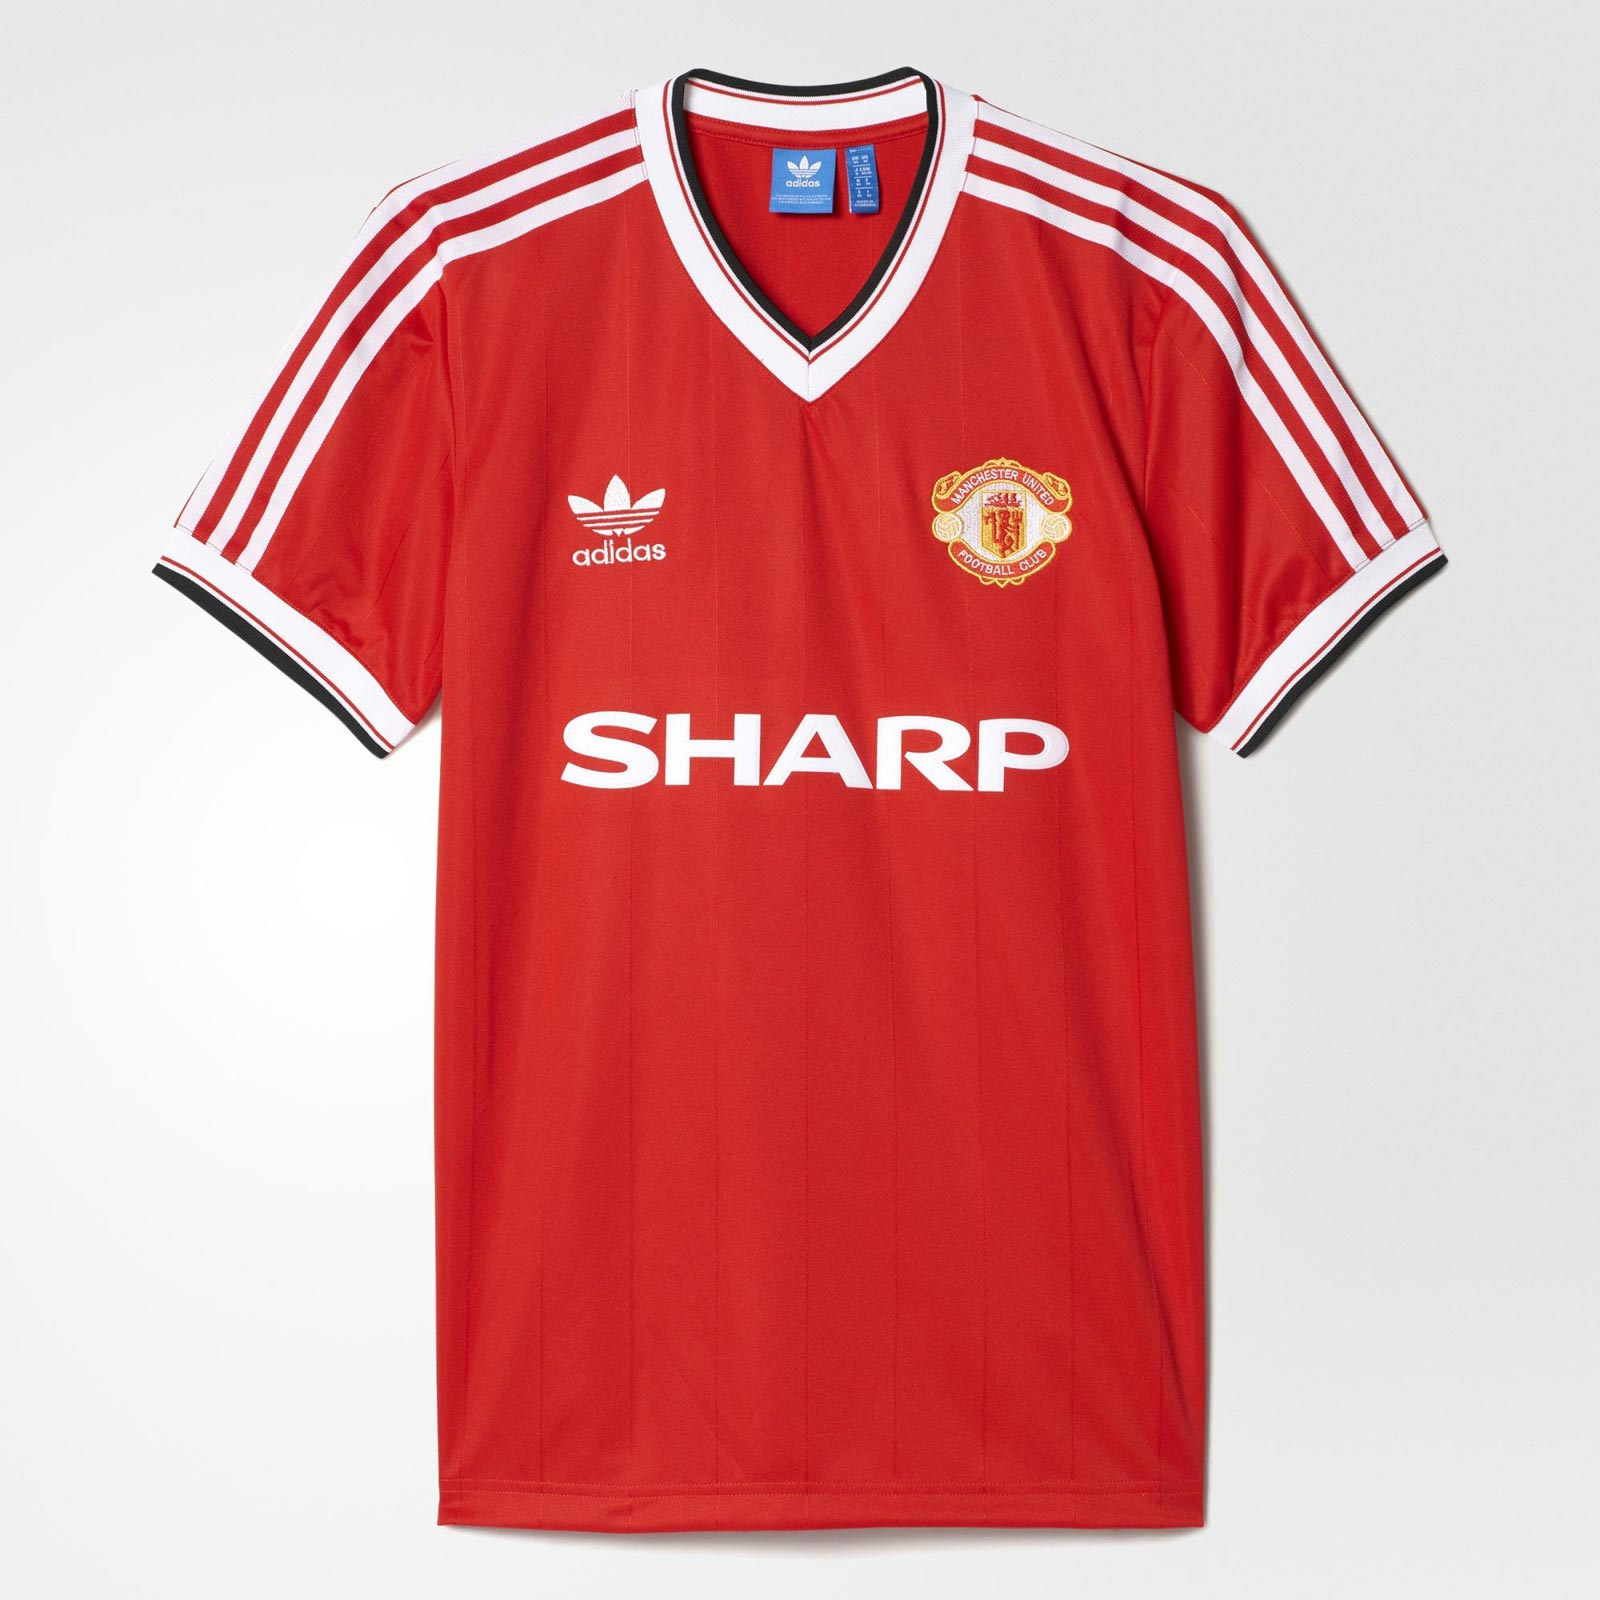 New Adidas Originals Manchester United Collection Unveiled